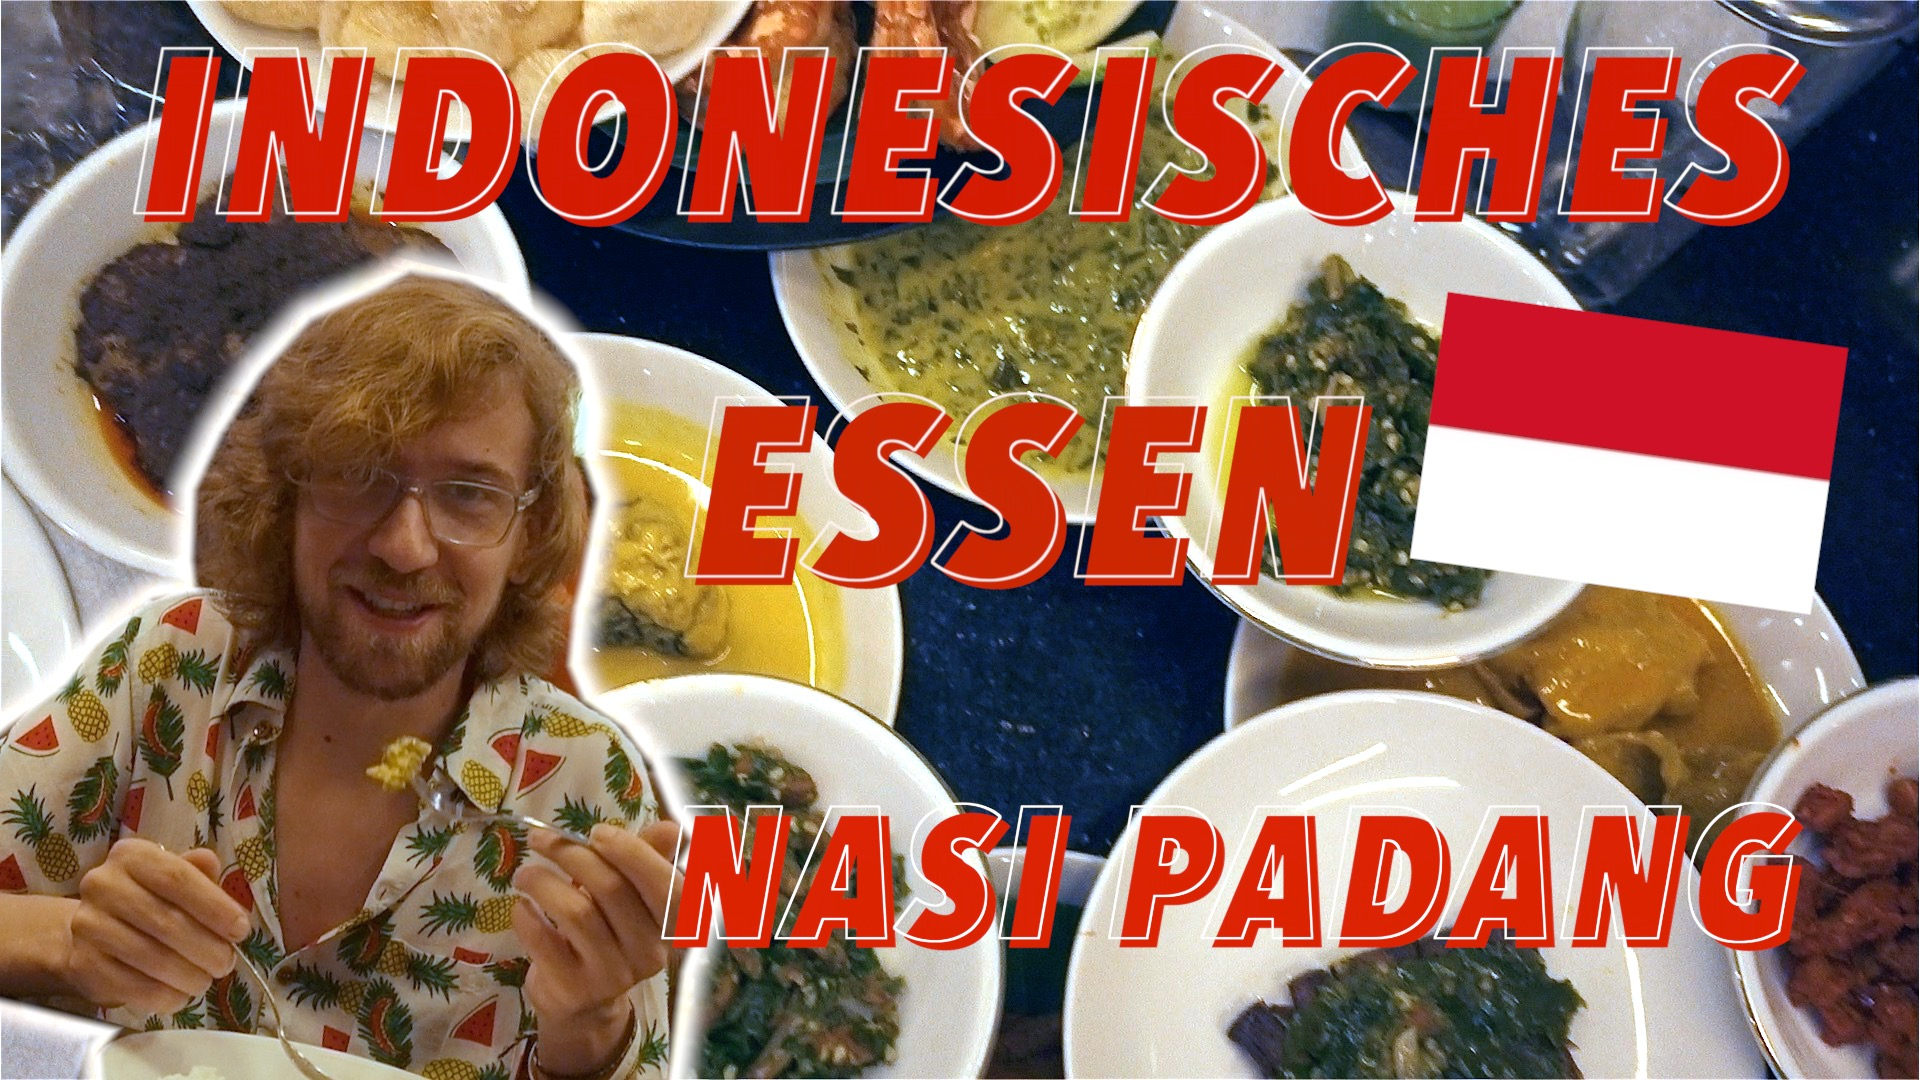 marce indonsisches essen